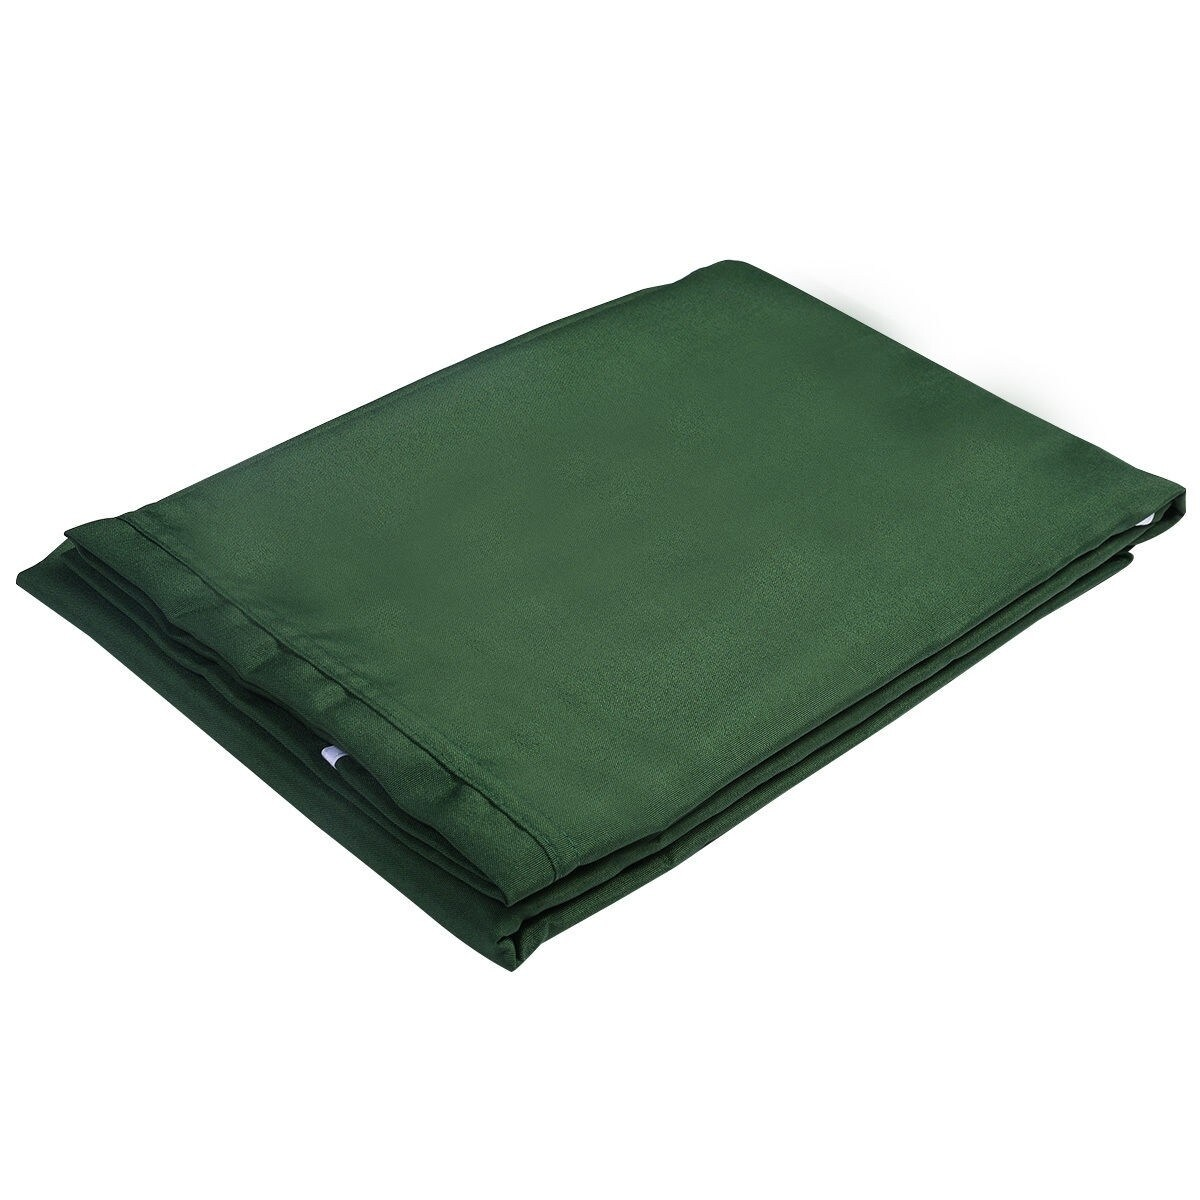 """Swing Top Canopy Replacement Cover - 75"""""""" L x 52"""